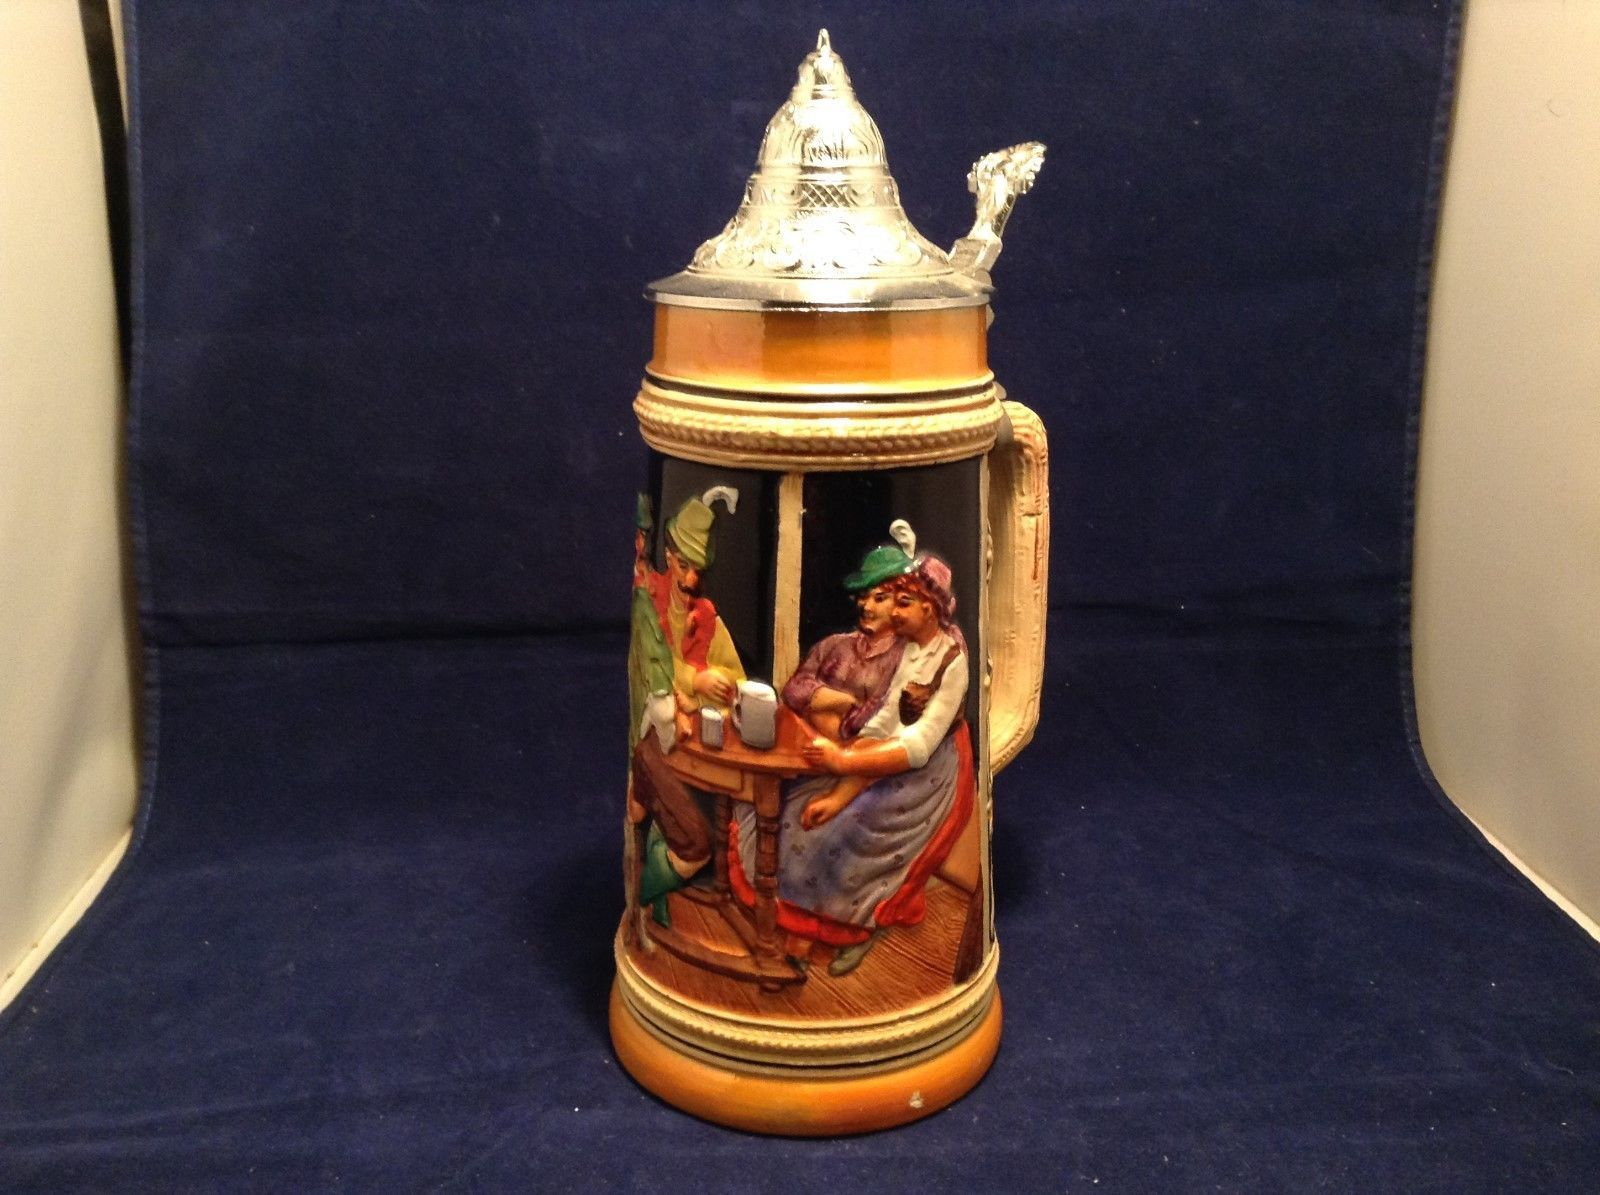 Vintage Gerz Handgemalt Lidded Beer Stein Made in Germany